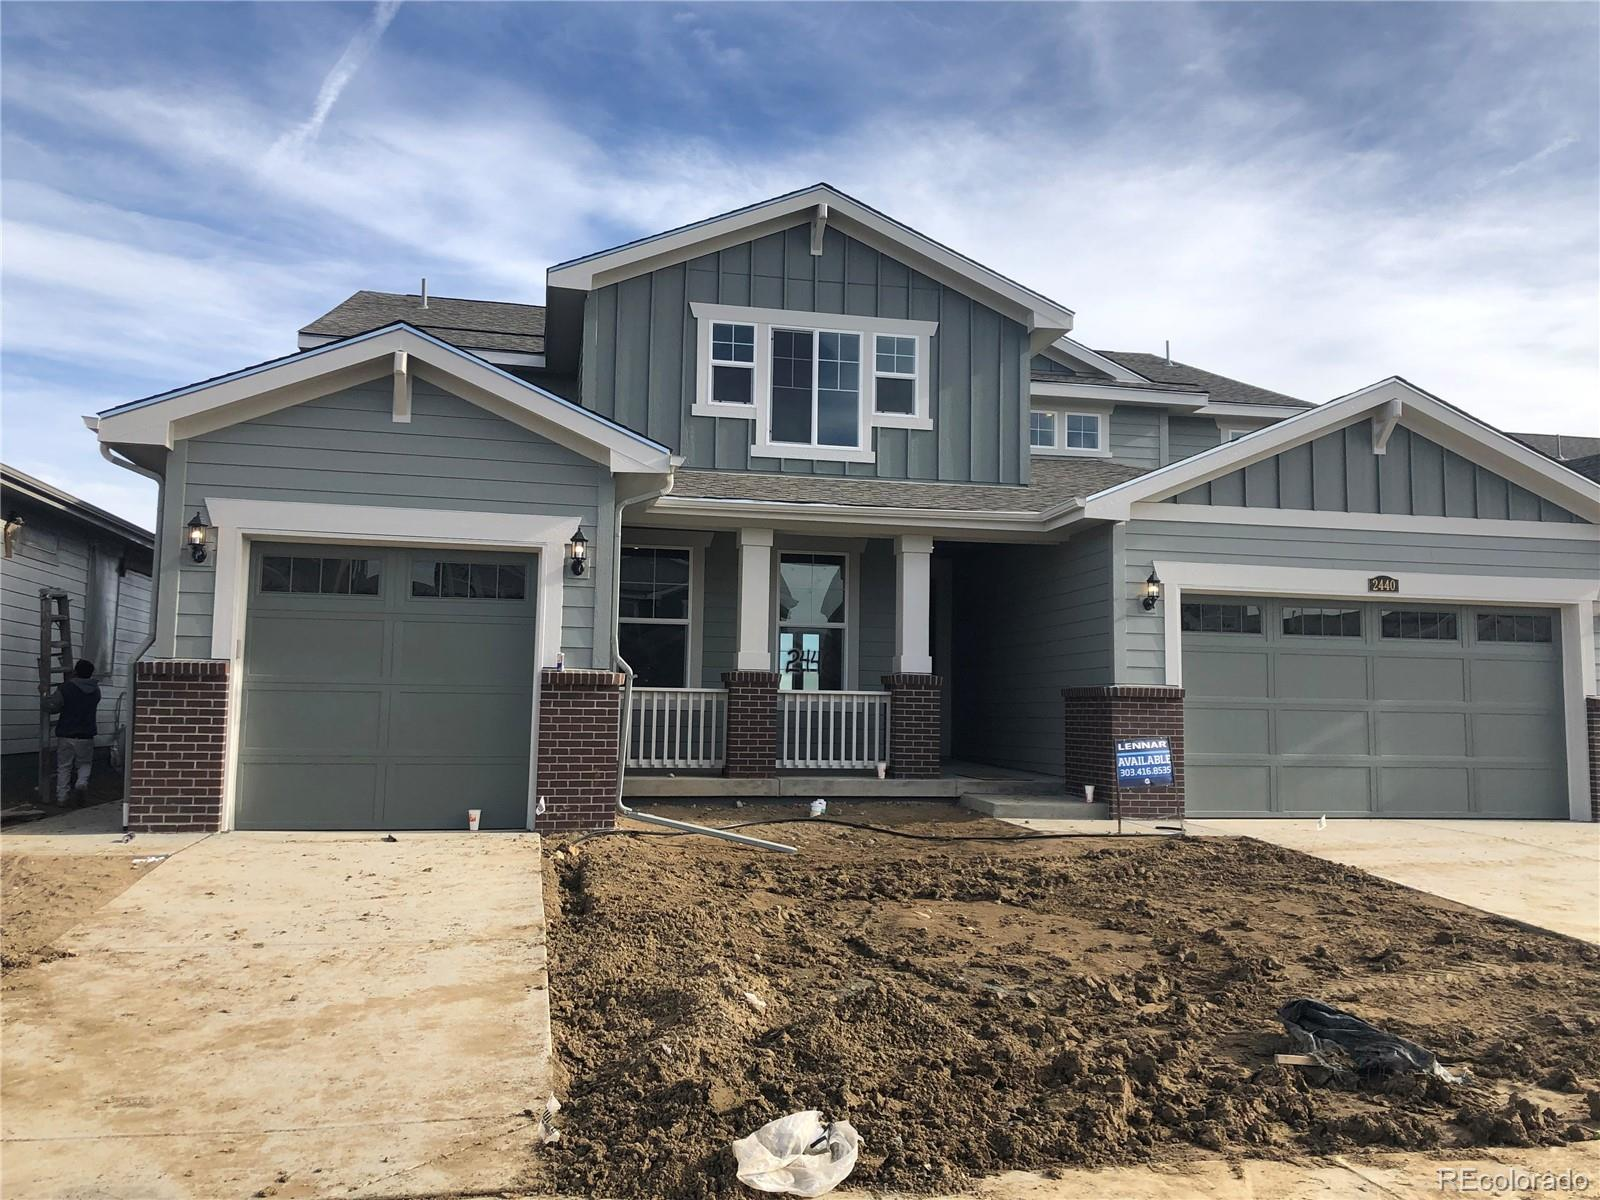 Available in  February 2020! Colorado living at its finest! This stunning Superhome in the brand new Provenance community features a total of 6 beds & 4.5 baths - 5 beds/3.5 baths in the main home along with a great room, nook, spacious kitchen,  large loft AND 1 bed, 1 bath, kitchenette and retreat in the secondary suite.   Adjacent to open space. Covered deck, extended hardwood, upgraded carpet and tile.Separate entrances and garages for each along with access from the main home to the secondary suite. An open basement is waiting for future expansion. Conveniently located close to shopping, dining, entertainment, transportation and acres of parks/trails and other great outdoor opportunities. Easy commute to Downtown Denver, Boulder, Golden and beyond. Don't wait - this home will sell quickly. Lives large and luxurious.